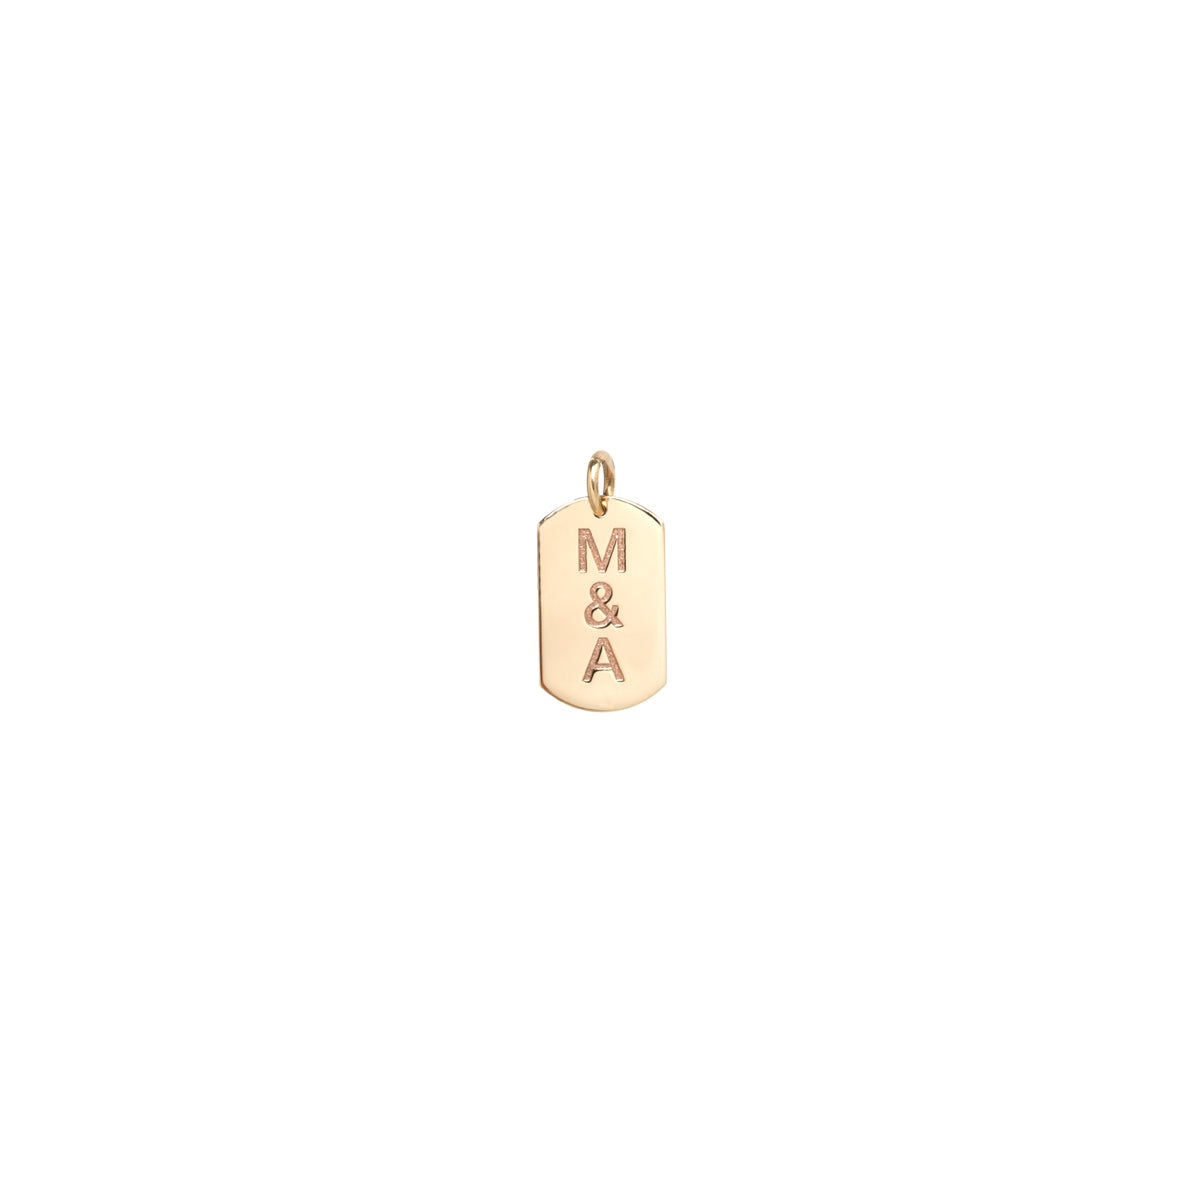 14k single small dog tag charm with engraved initials